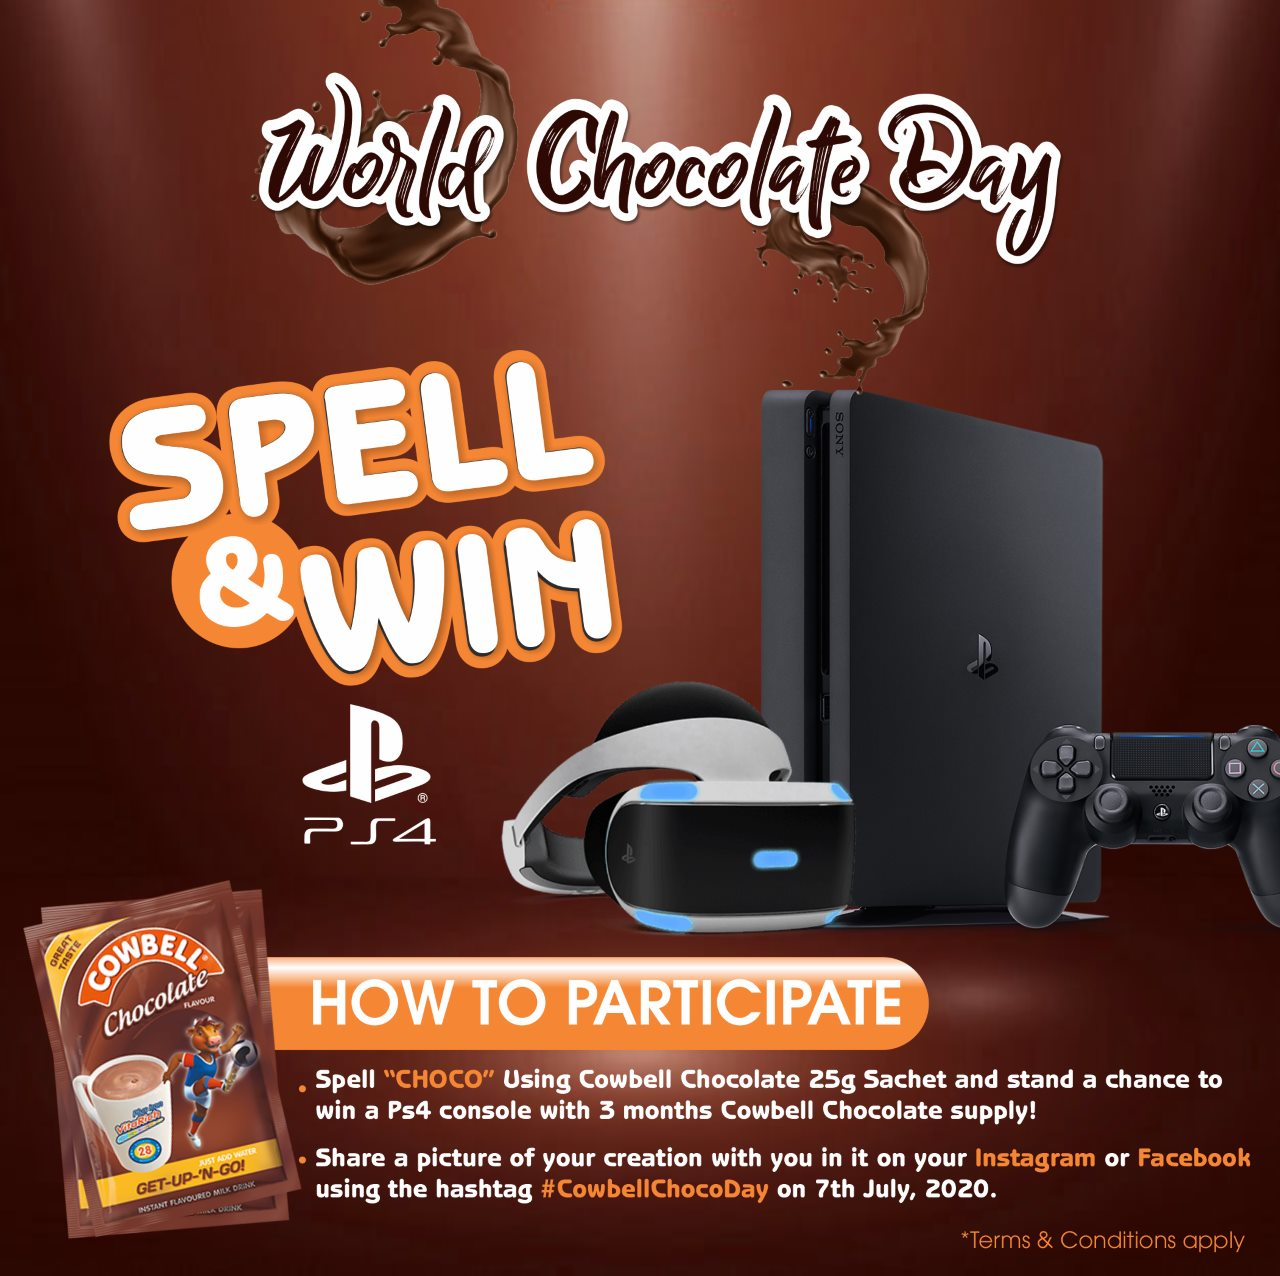 Spell CHOCO and Win a PS4 or 3 Months Supply of CowbellMilk in SPELL & WIN GIVEAWAY.